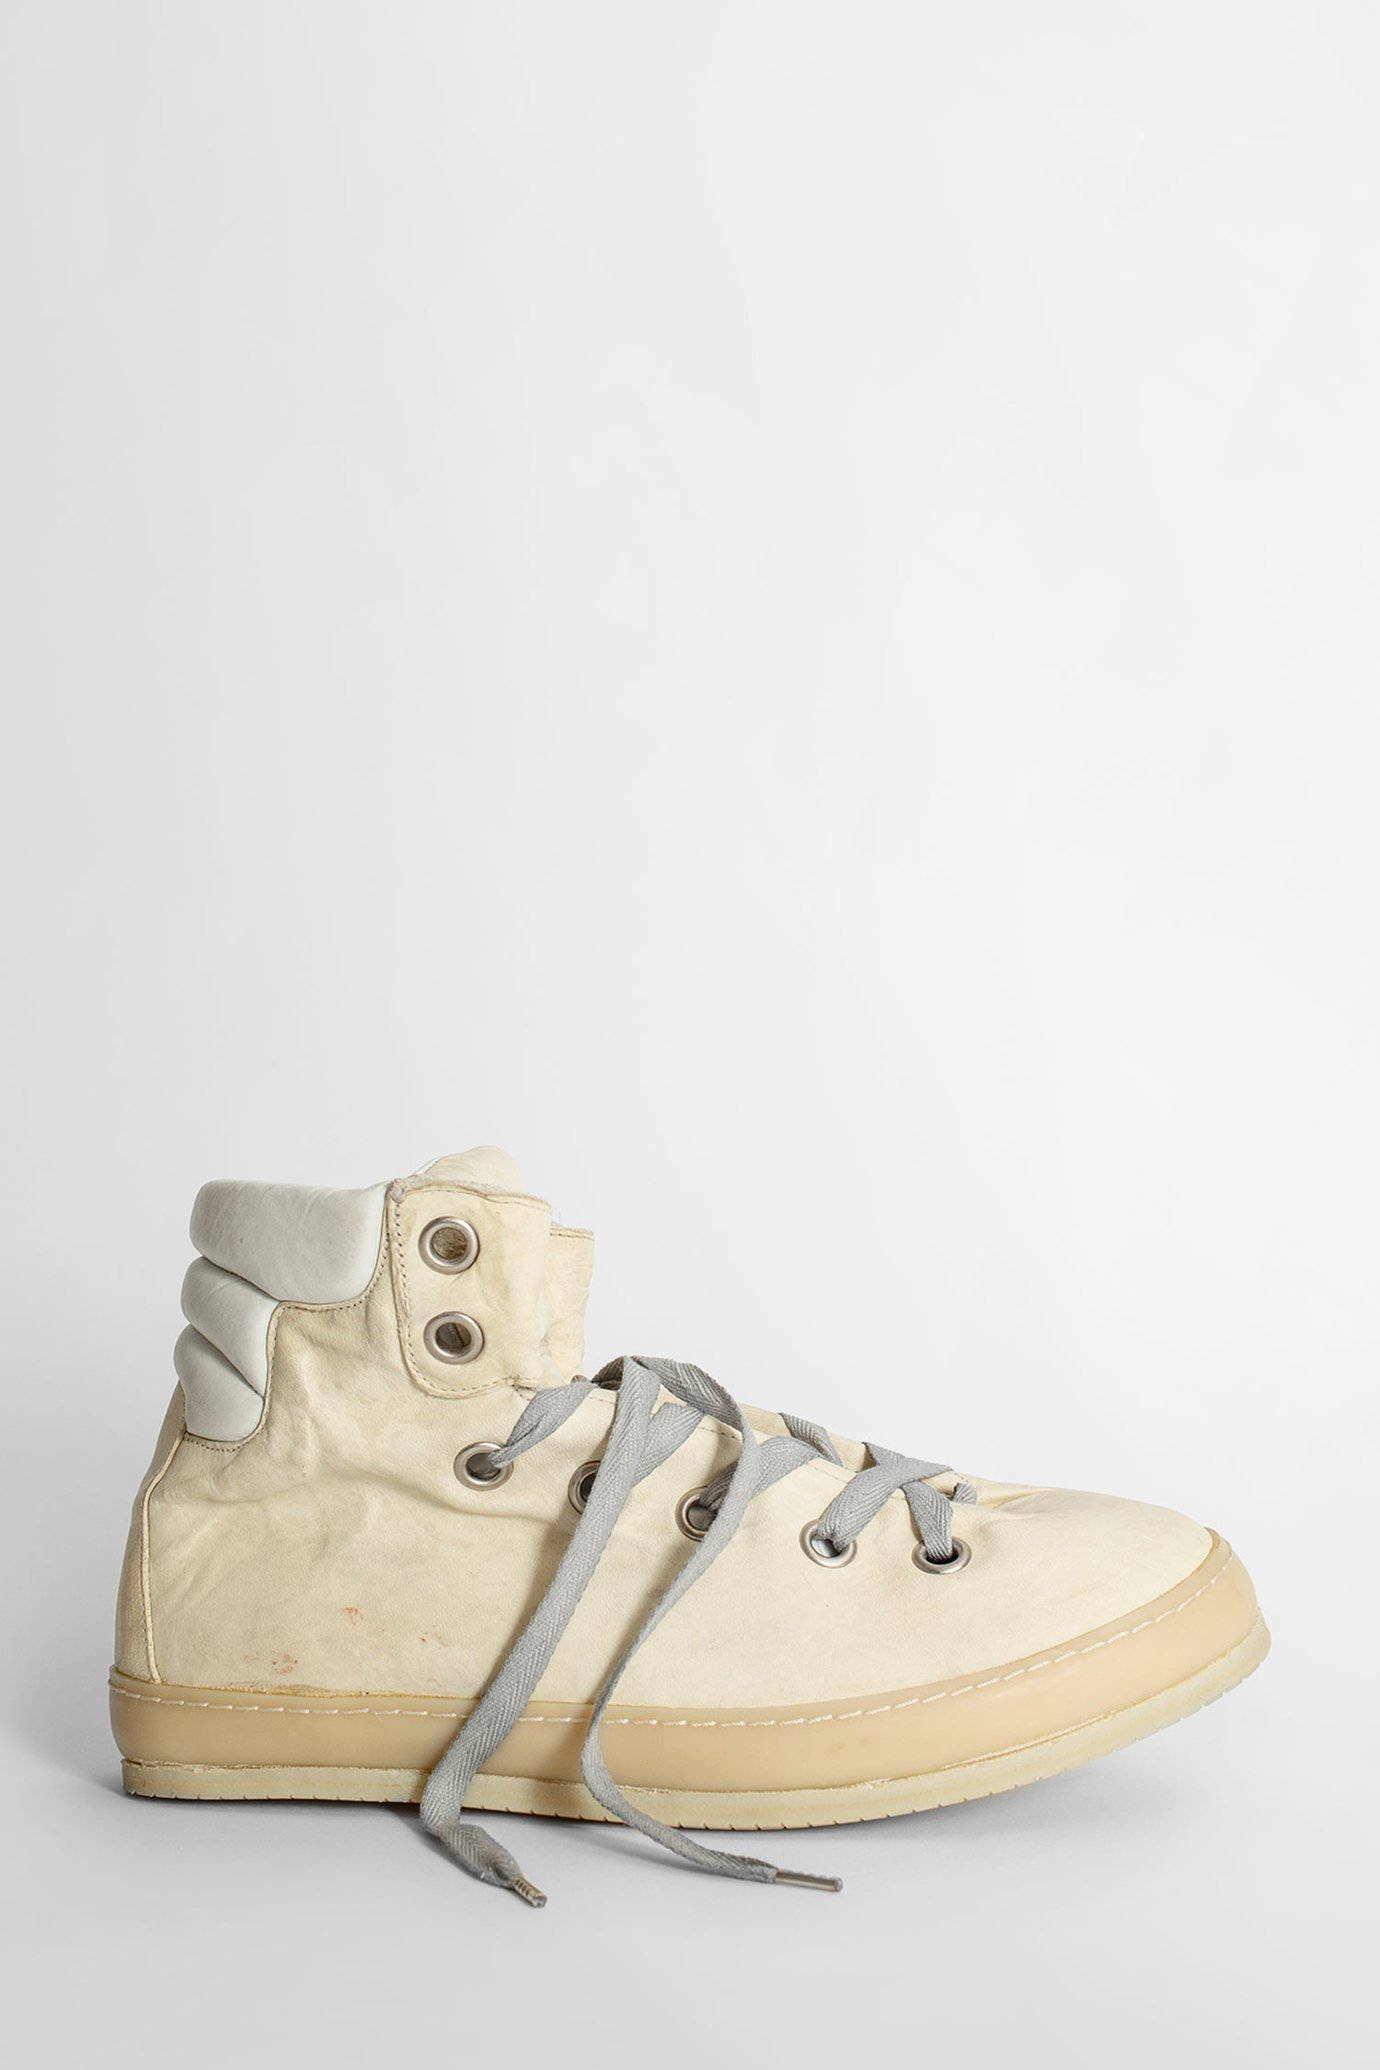 A Diciannoveventitre Sneakers In Off White